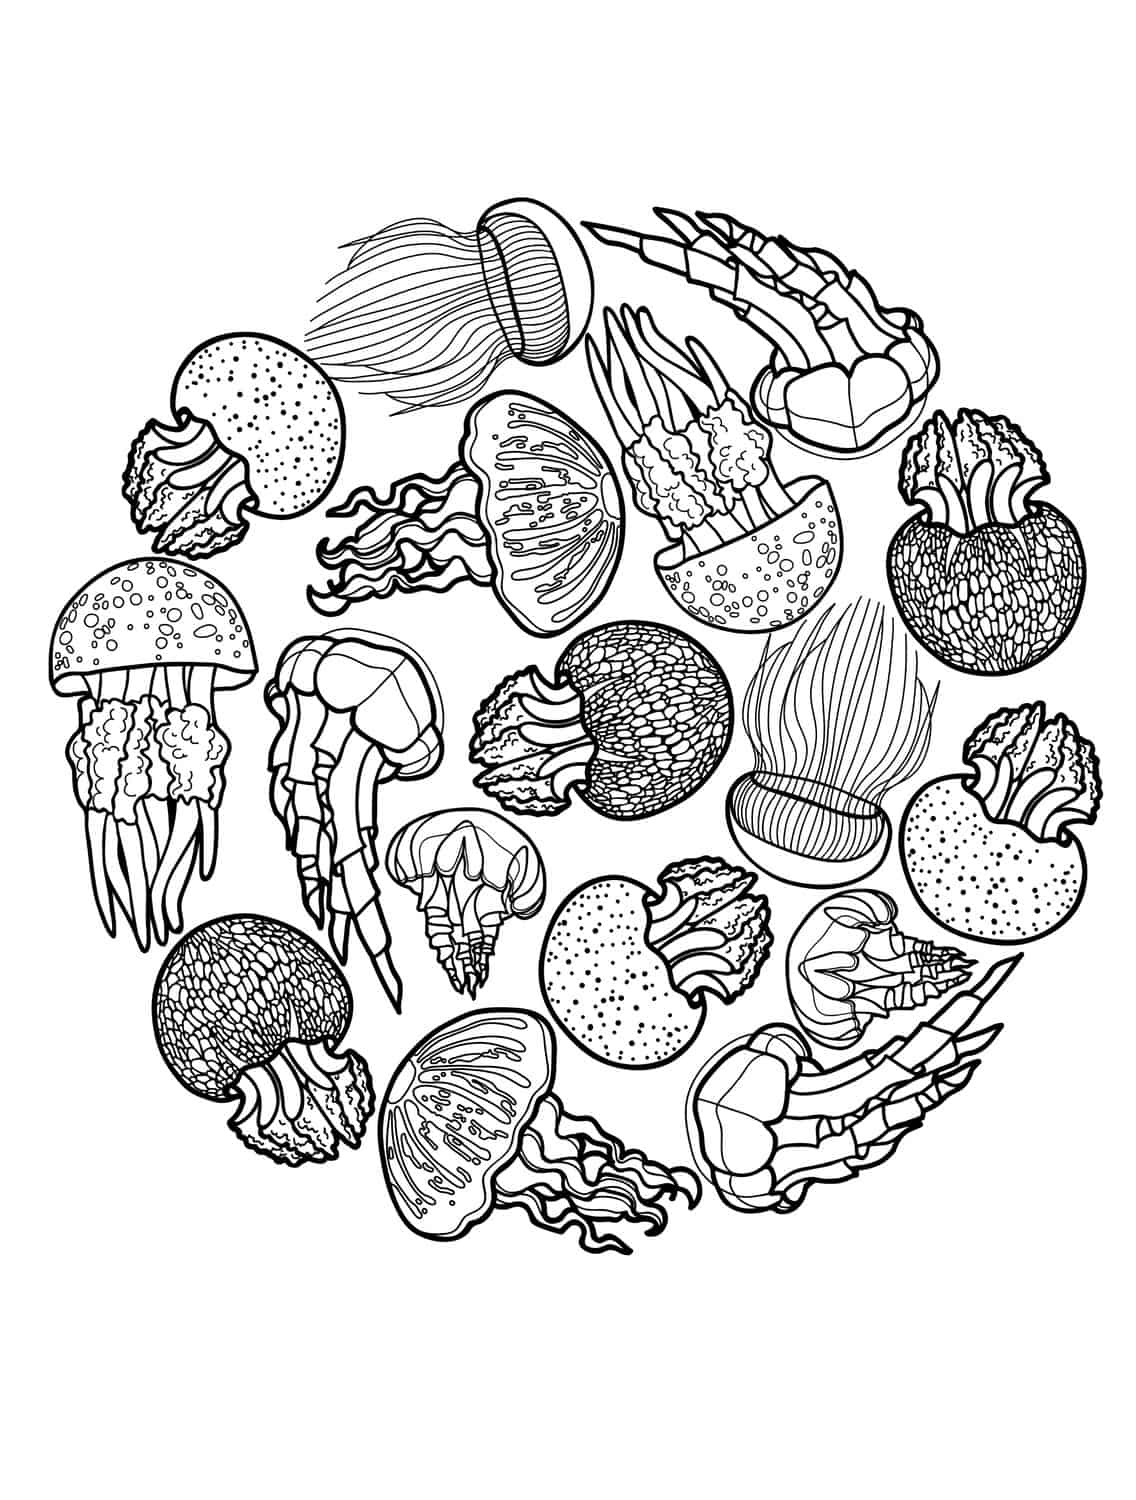 6af803ea4d798851f549f87cb4523bca further Lovely Ocean Coloring Page for Adults in addition f6d7bf07b8b2fbaa98ba11ce544bf666 in addition coloriage hibou dessin brut as well  in addition  additionally Sea turtle coloring pages under the sea furthermore  besides Leatherback Sea Turtle Coloring Page also  further . on printable adult coloring pages sea turtle